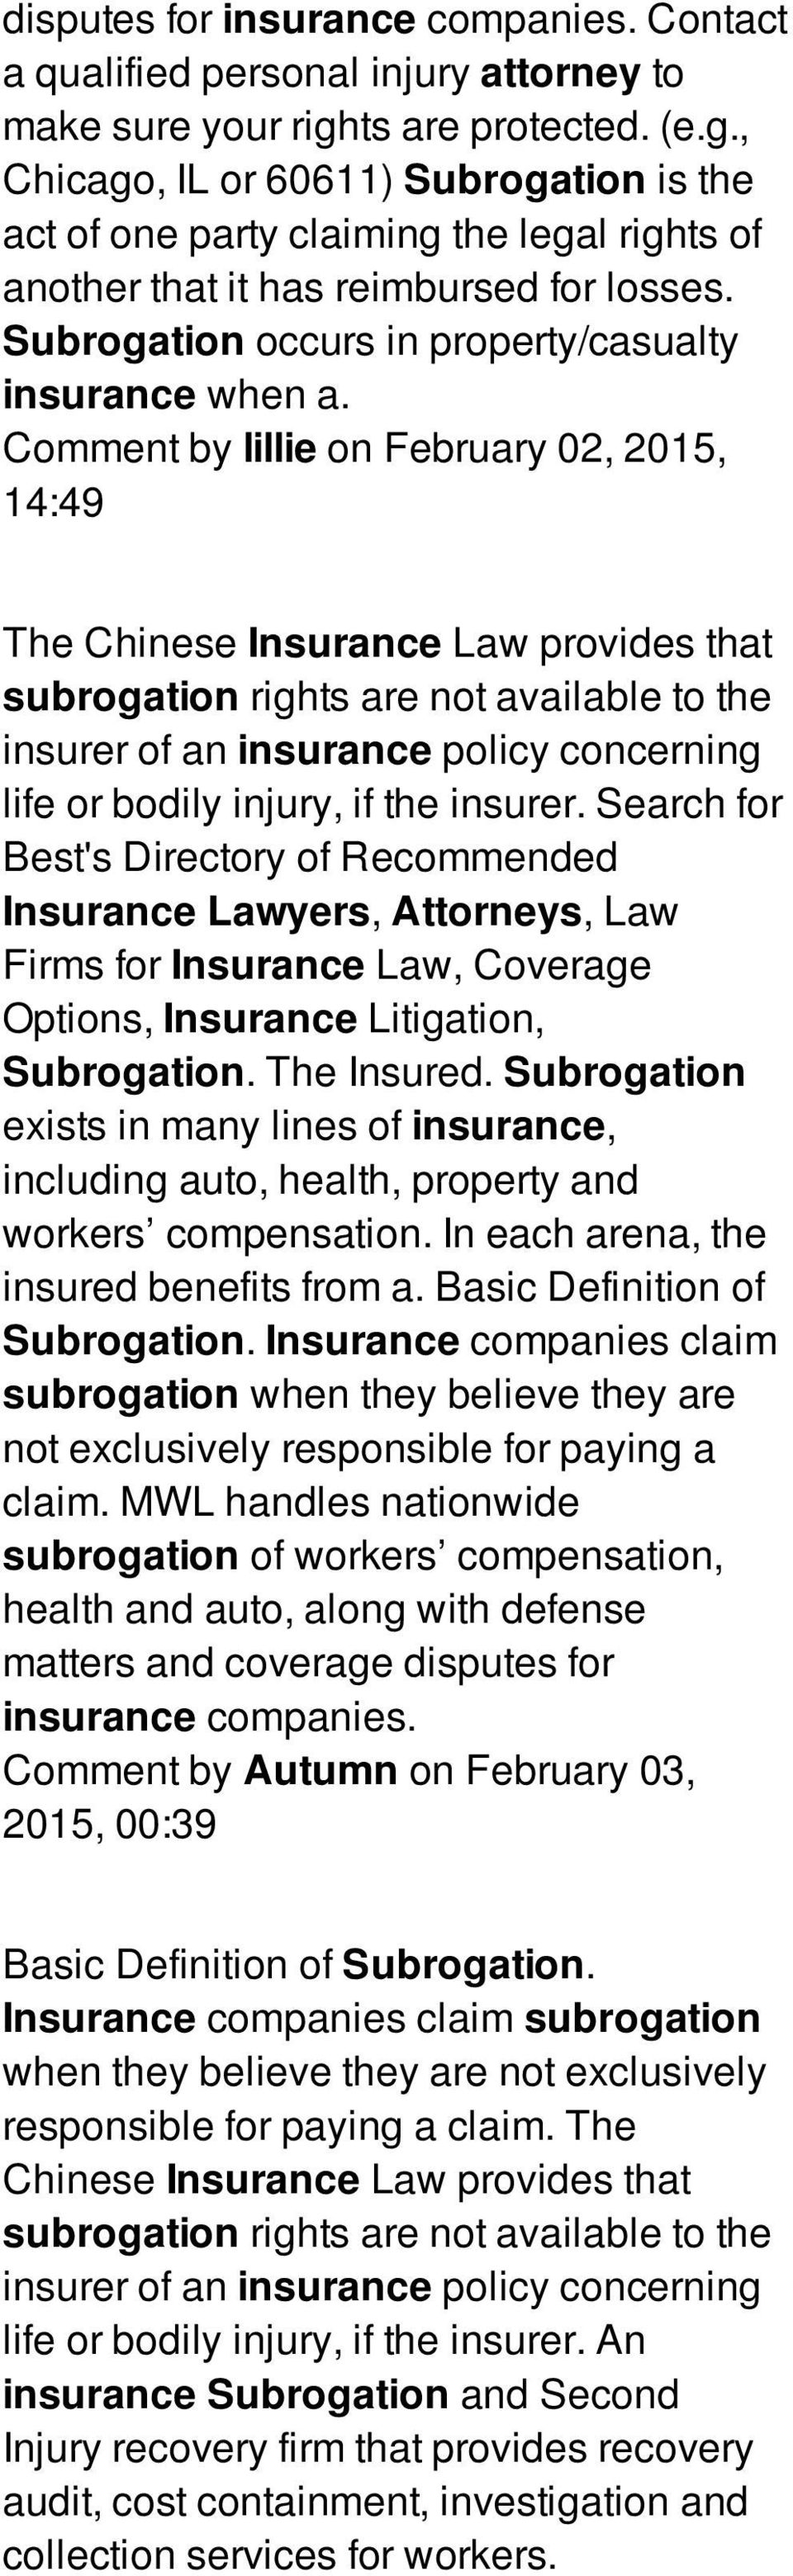 Subrogation occurs in property/casualty insurance when a.